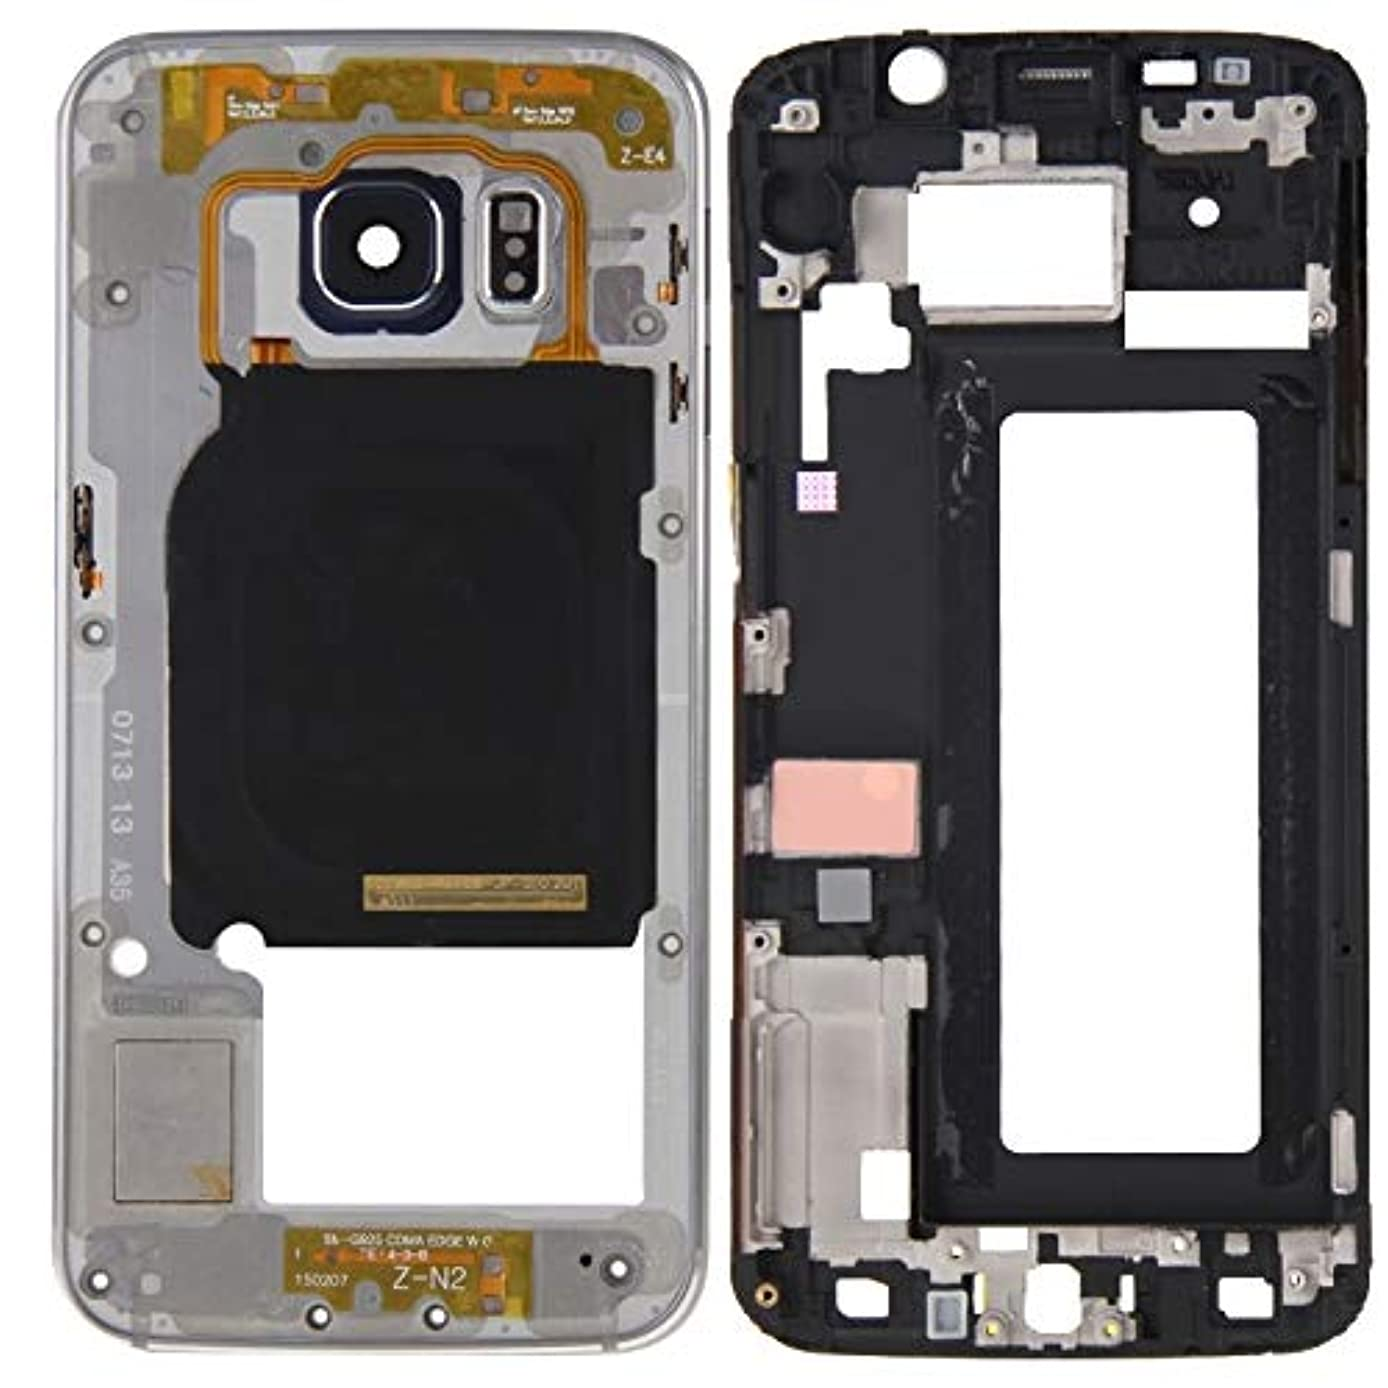 TTDY Professional Full Housing Cover (Front Housing LCD Frame Bezel Plate + Back Plate Housing Camera Lens Panel) for Galaxy S6 Edge / G925(Grey) Parts (Color : Grey)